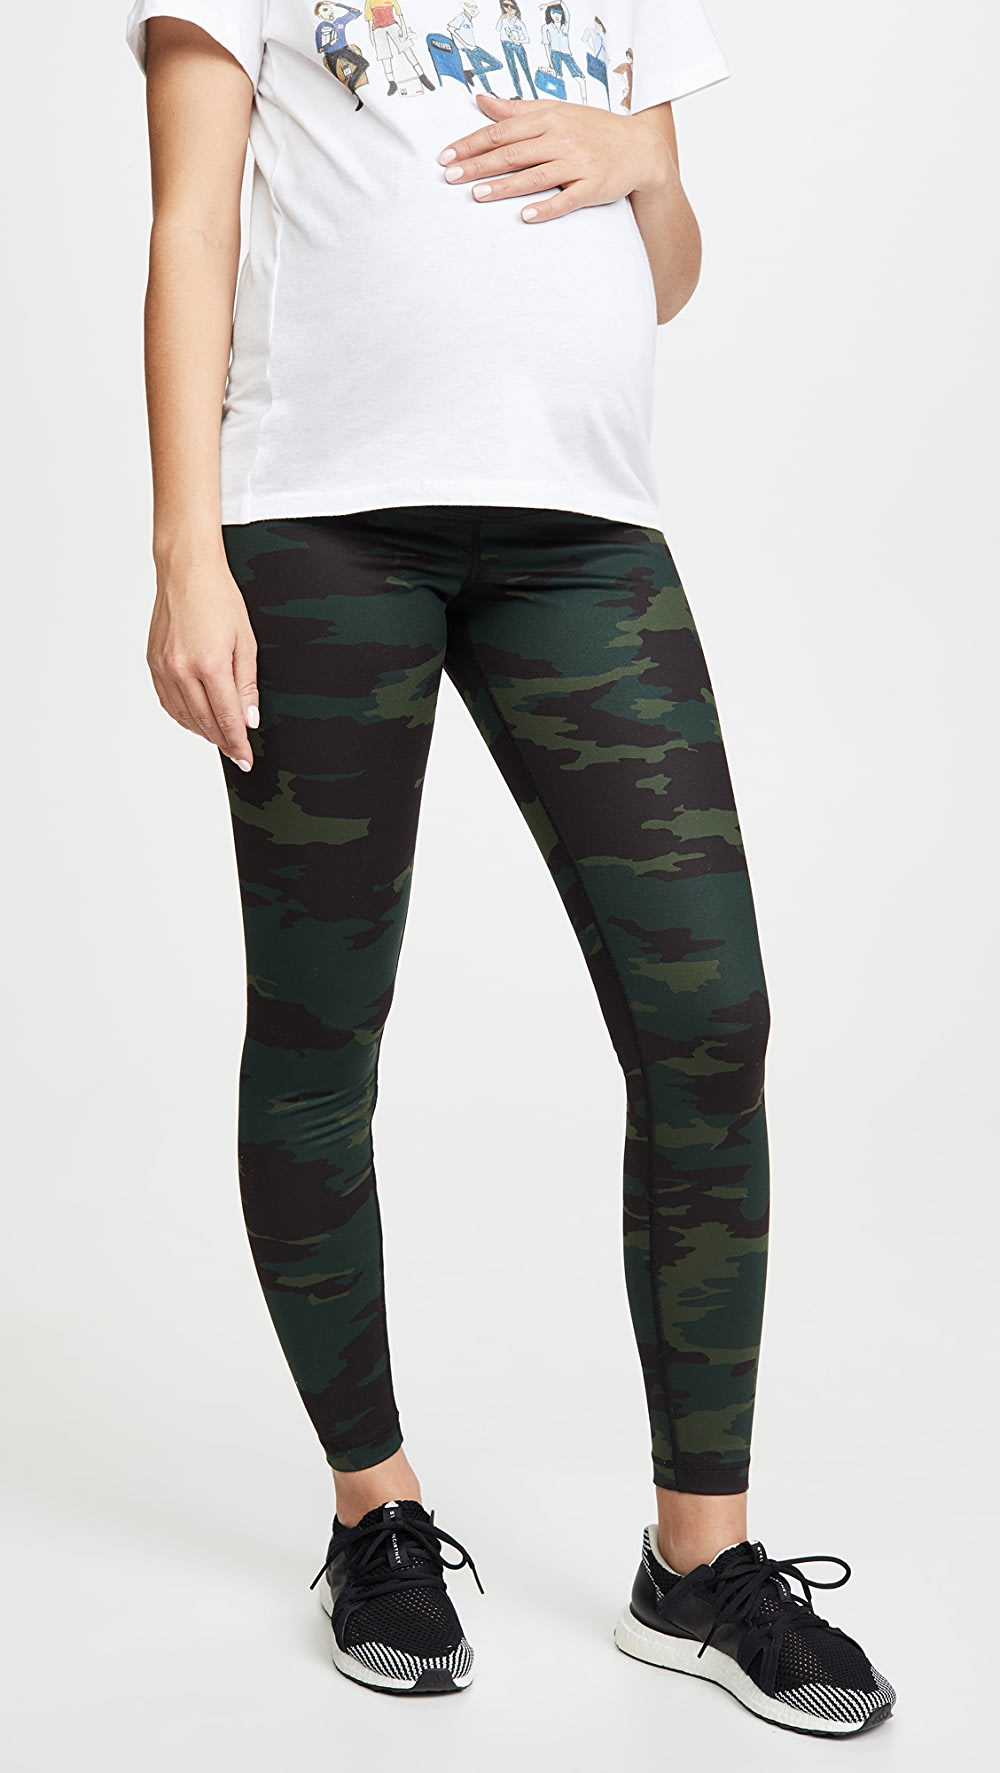 Aspiring Ingrid & Isabel - Active Leggings With Crossover Panel Fine Craftsmanship